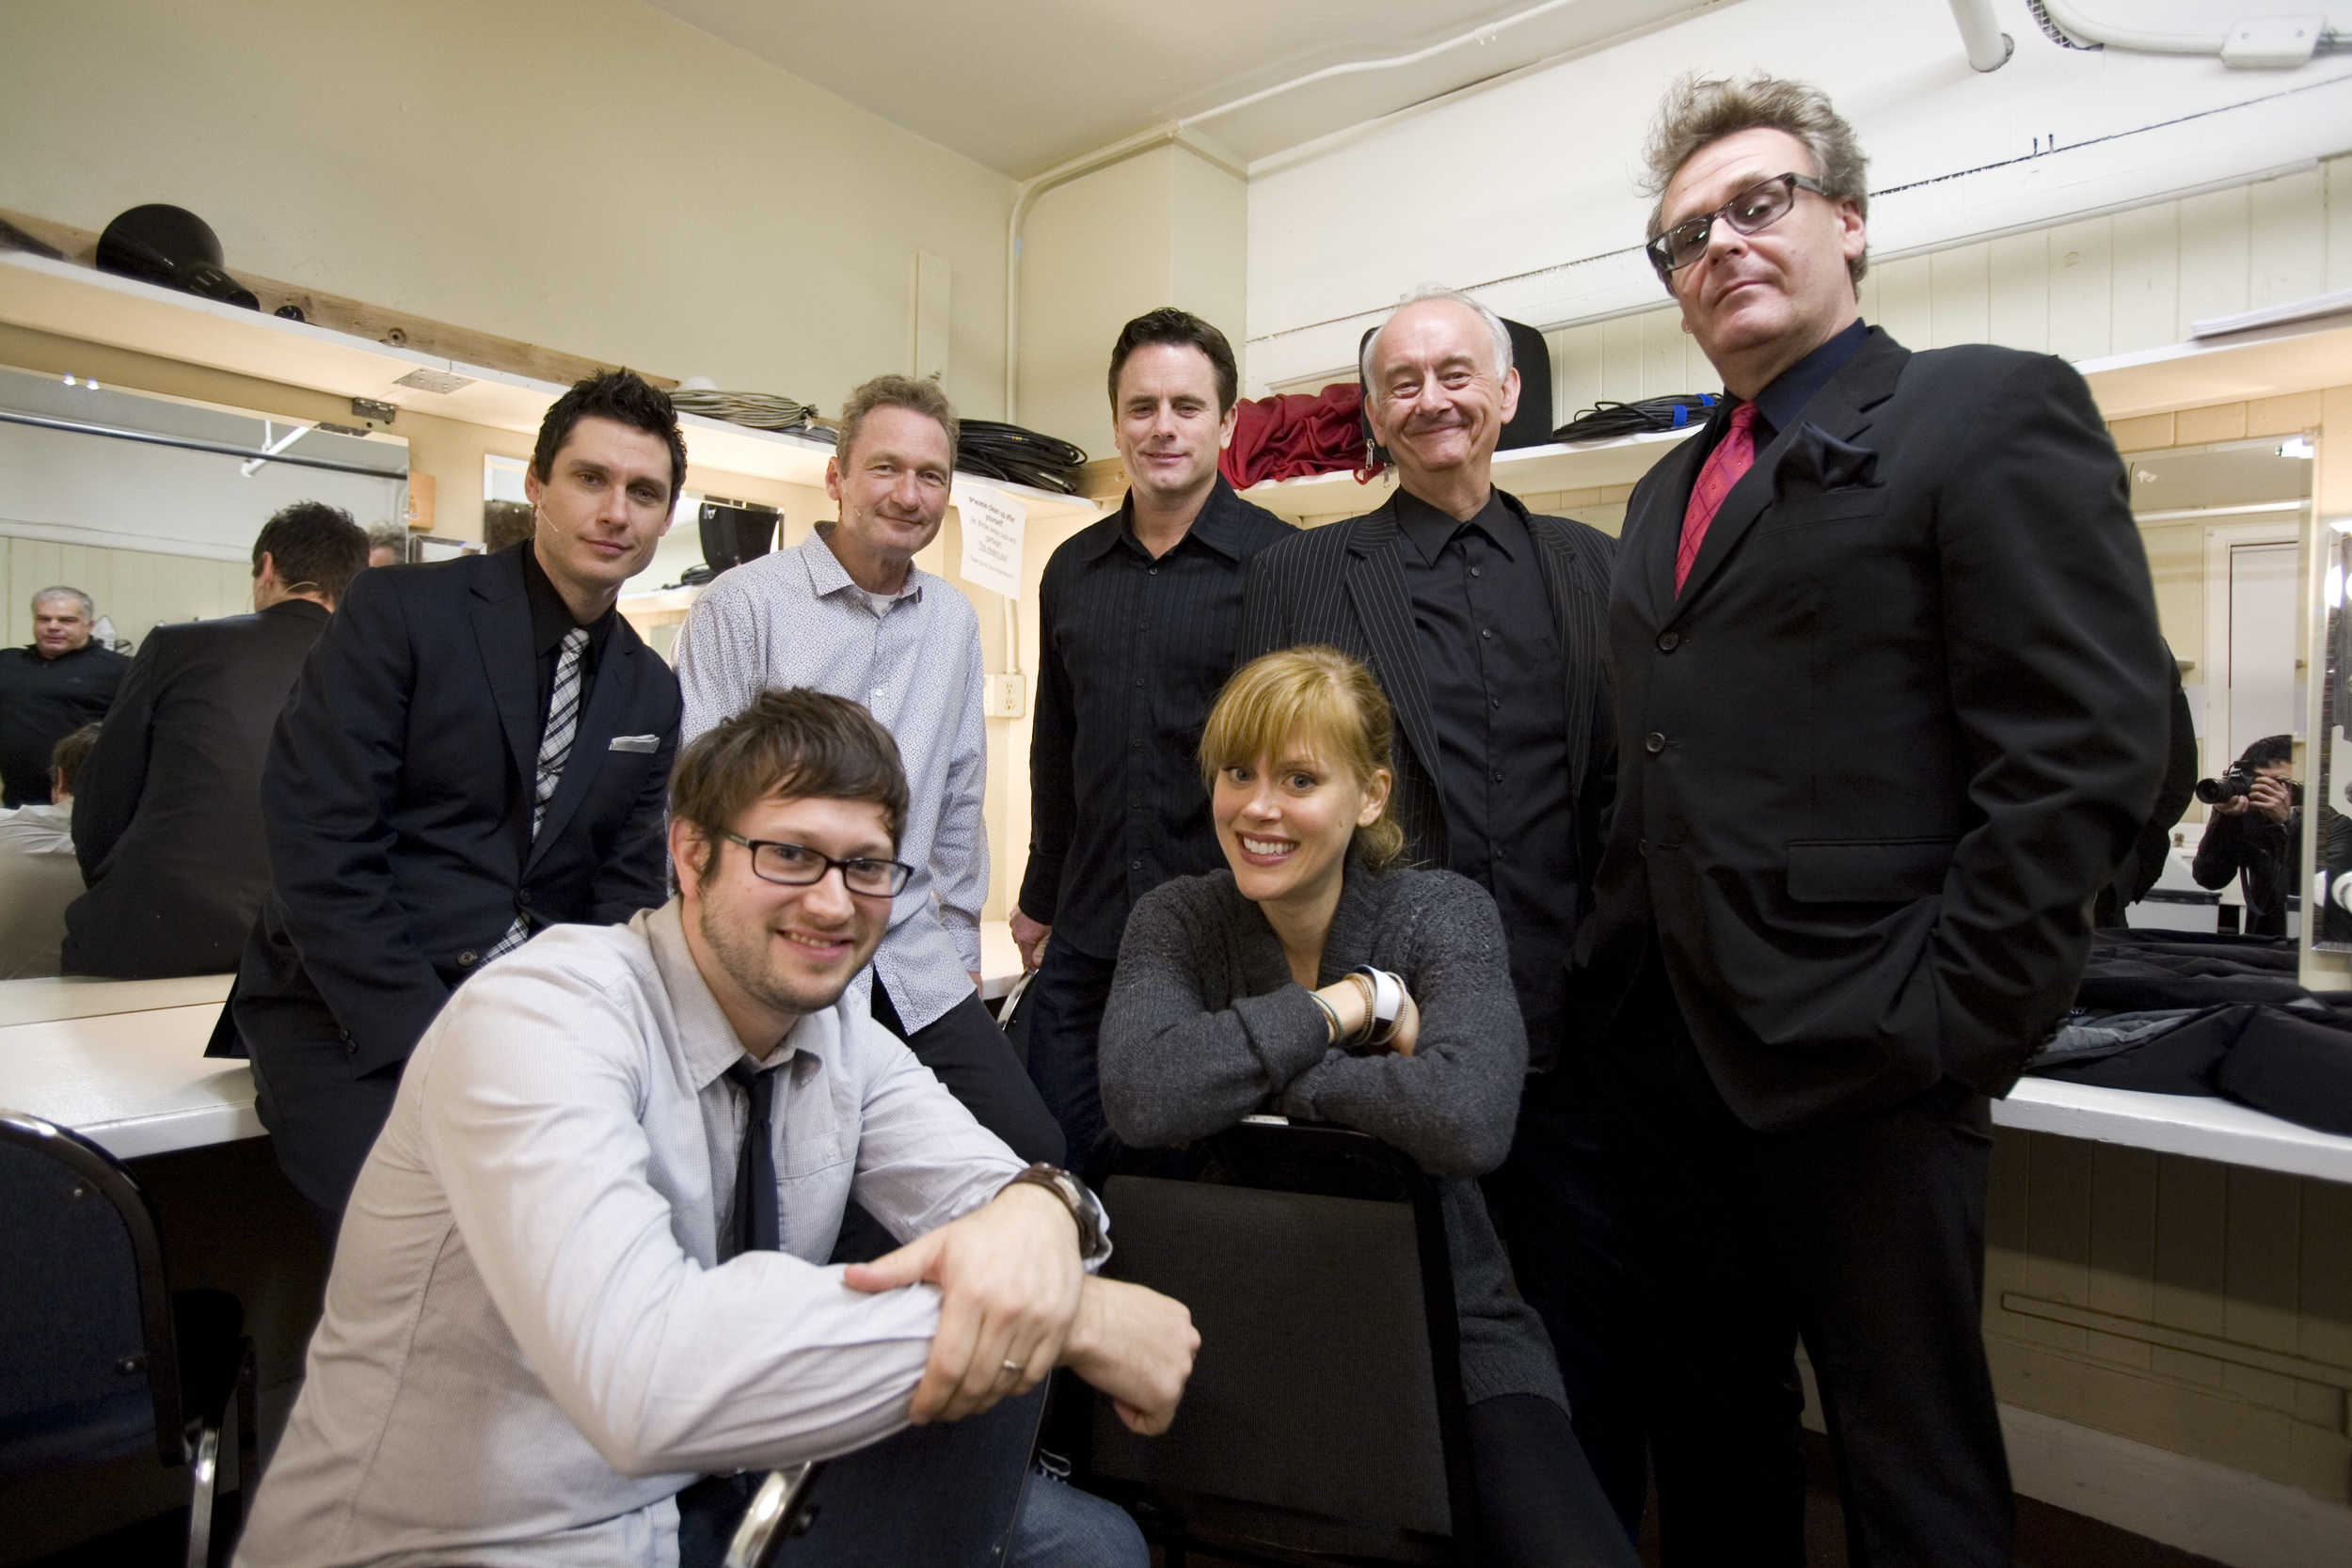 Jeff B. Davis, Ryan Stiles, Chip Esten, Bob Dirkach, Greg Proops and Janet Varney. Photo by Tommy Lau.